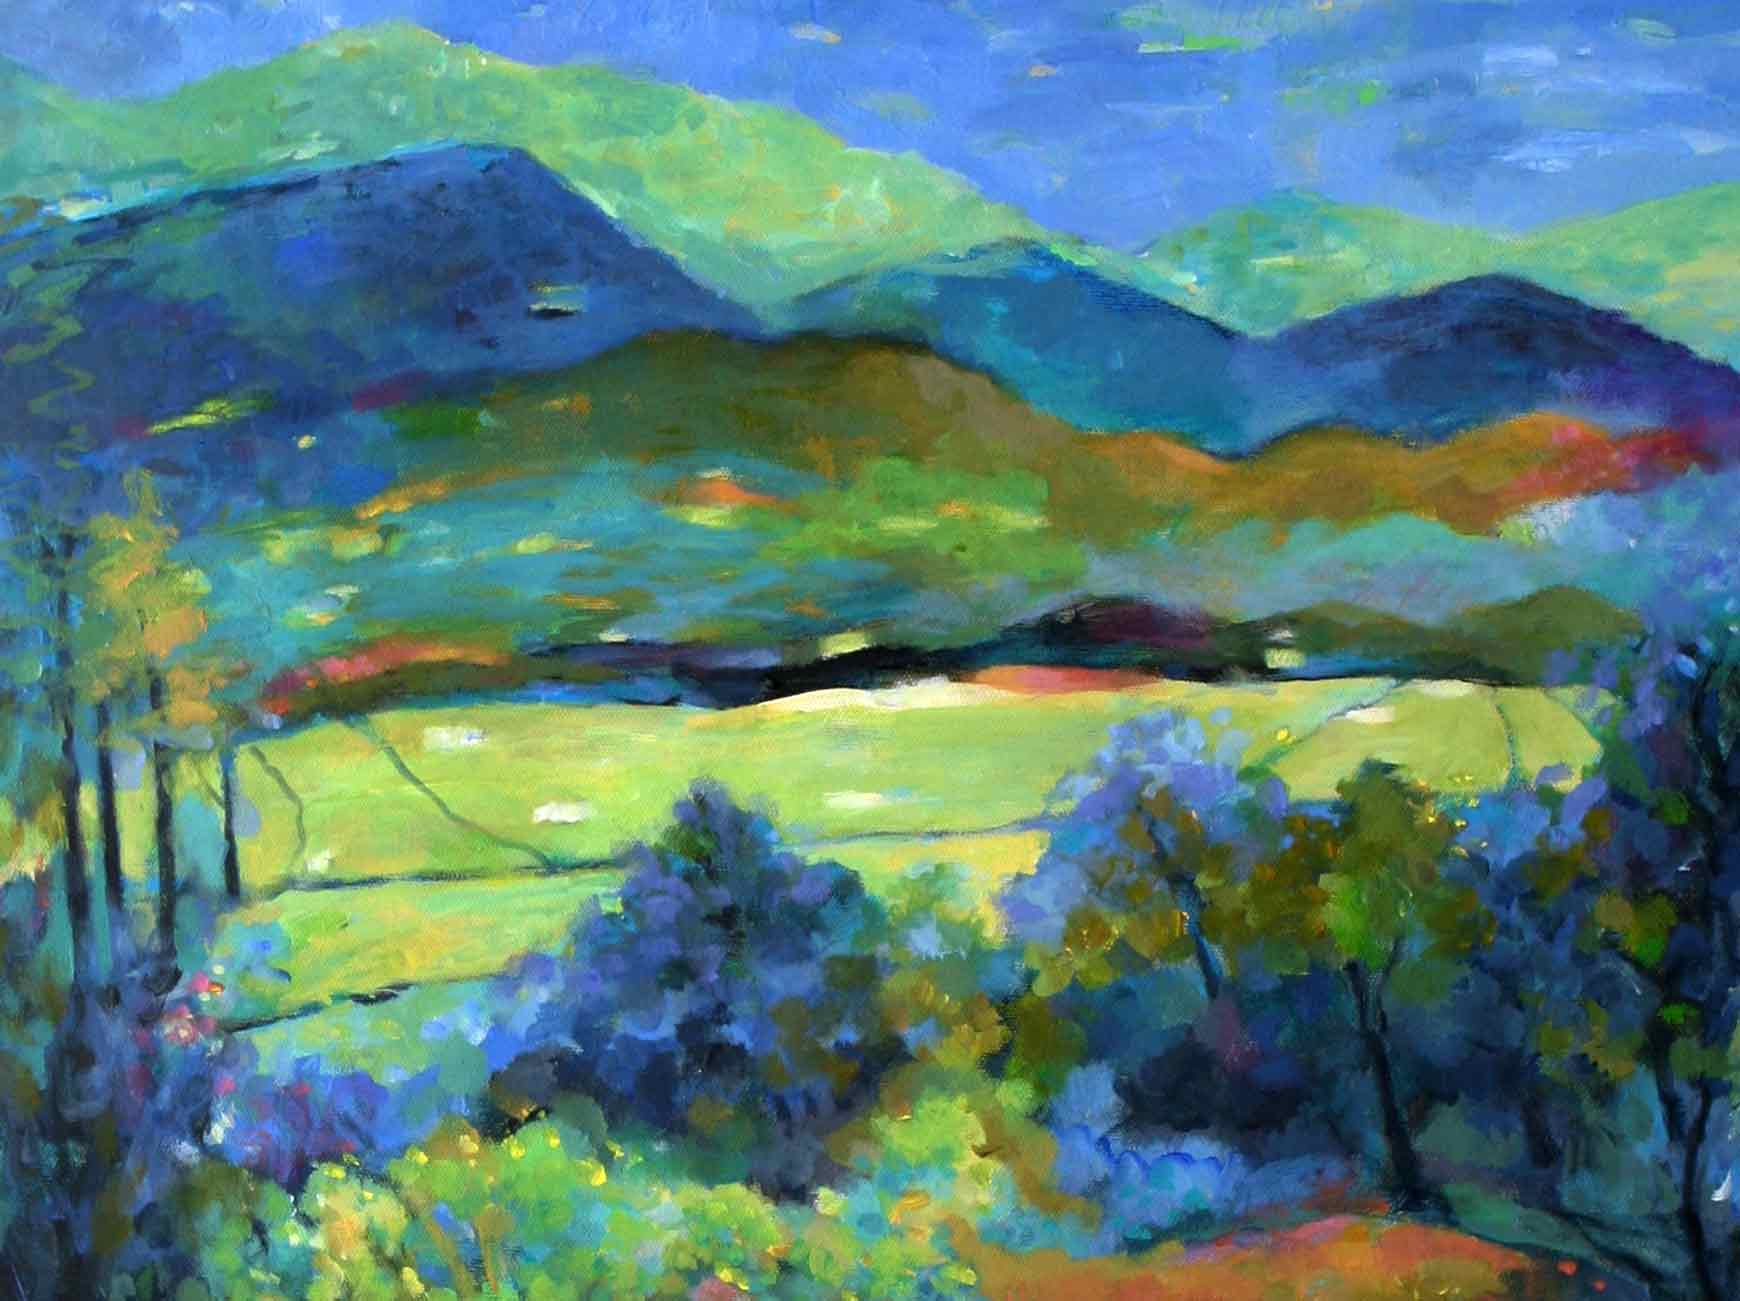 warm and cool colors | Hue Bliss: Color & Art notes by Karen Gillis ...